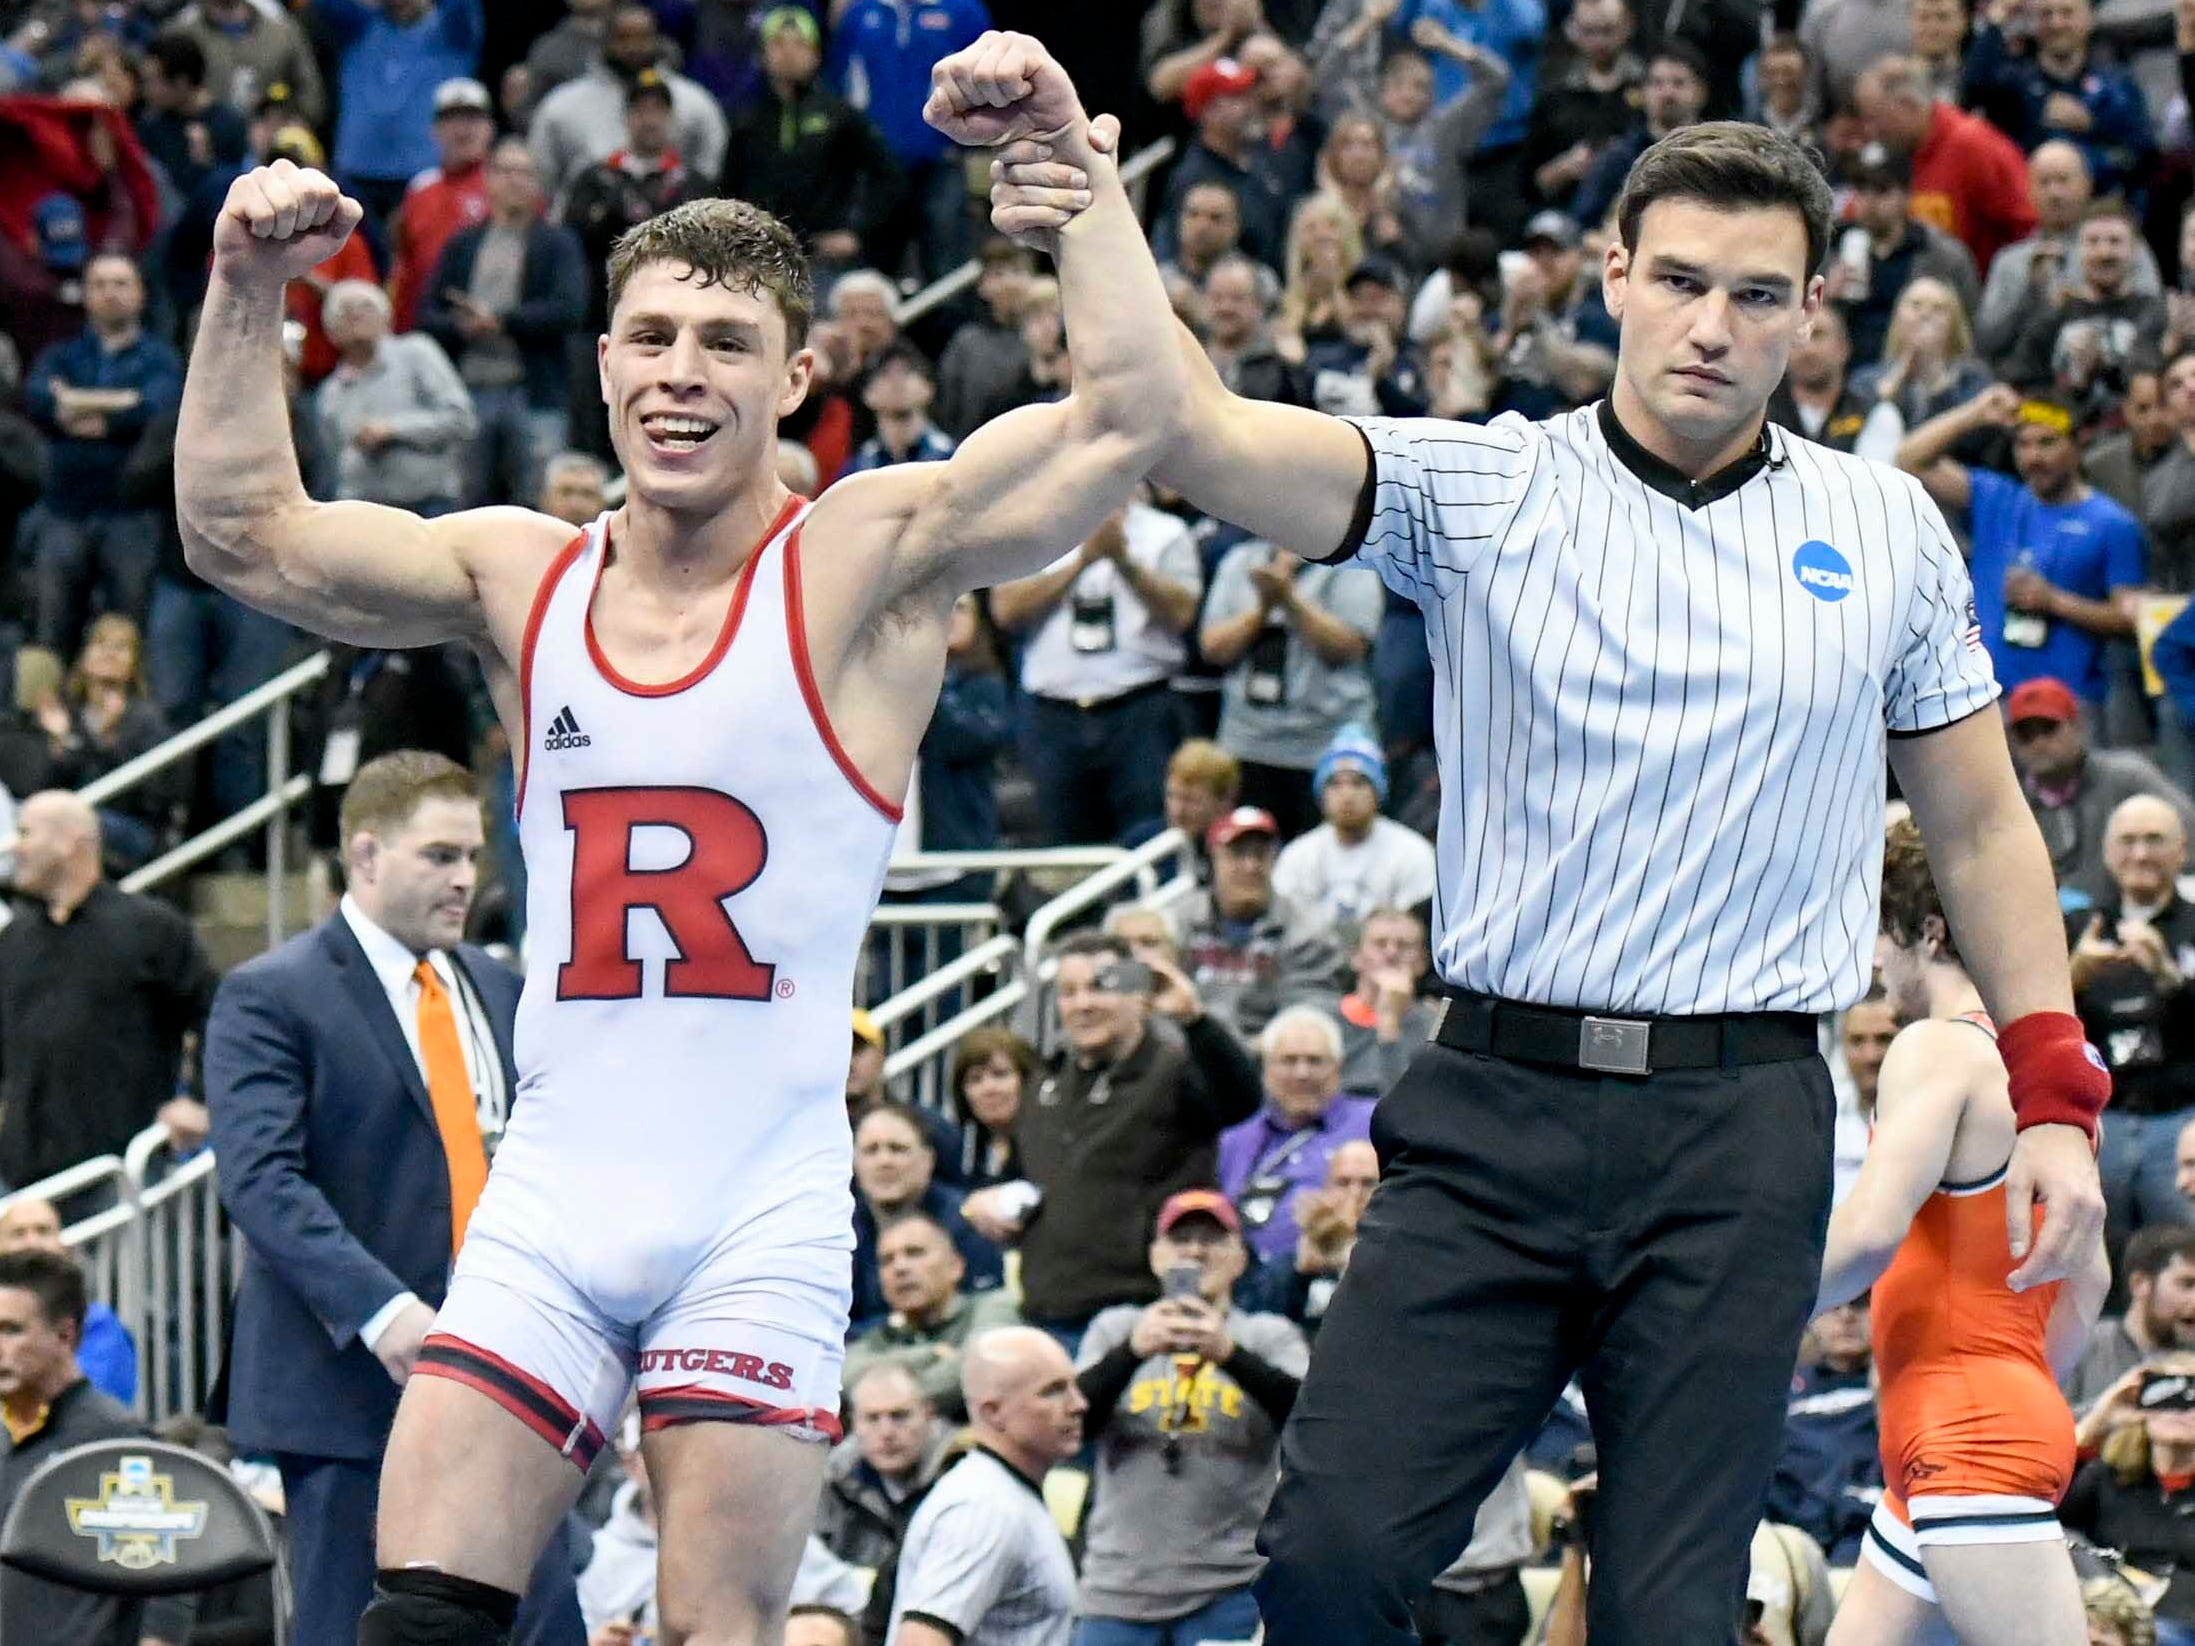 Nick Suriano brings Rutgers wrestling its first national title